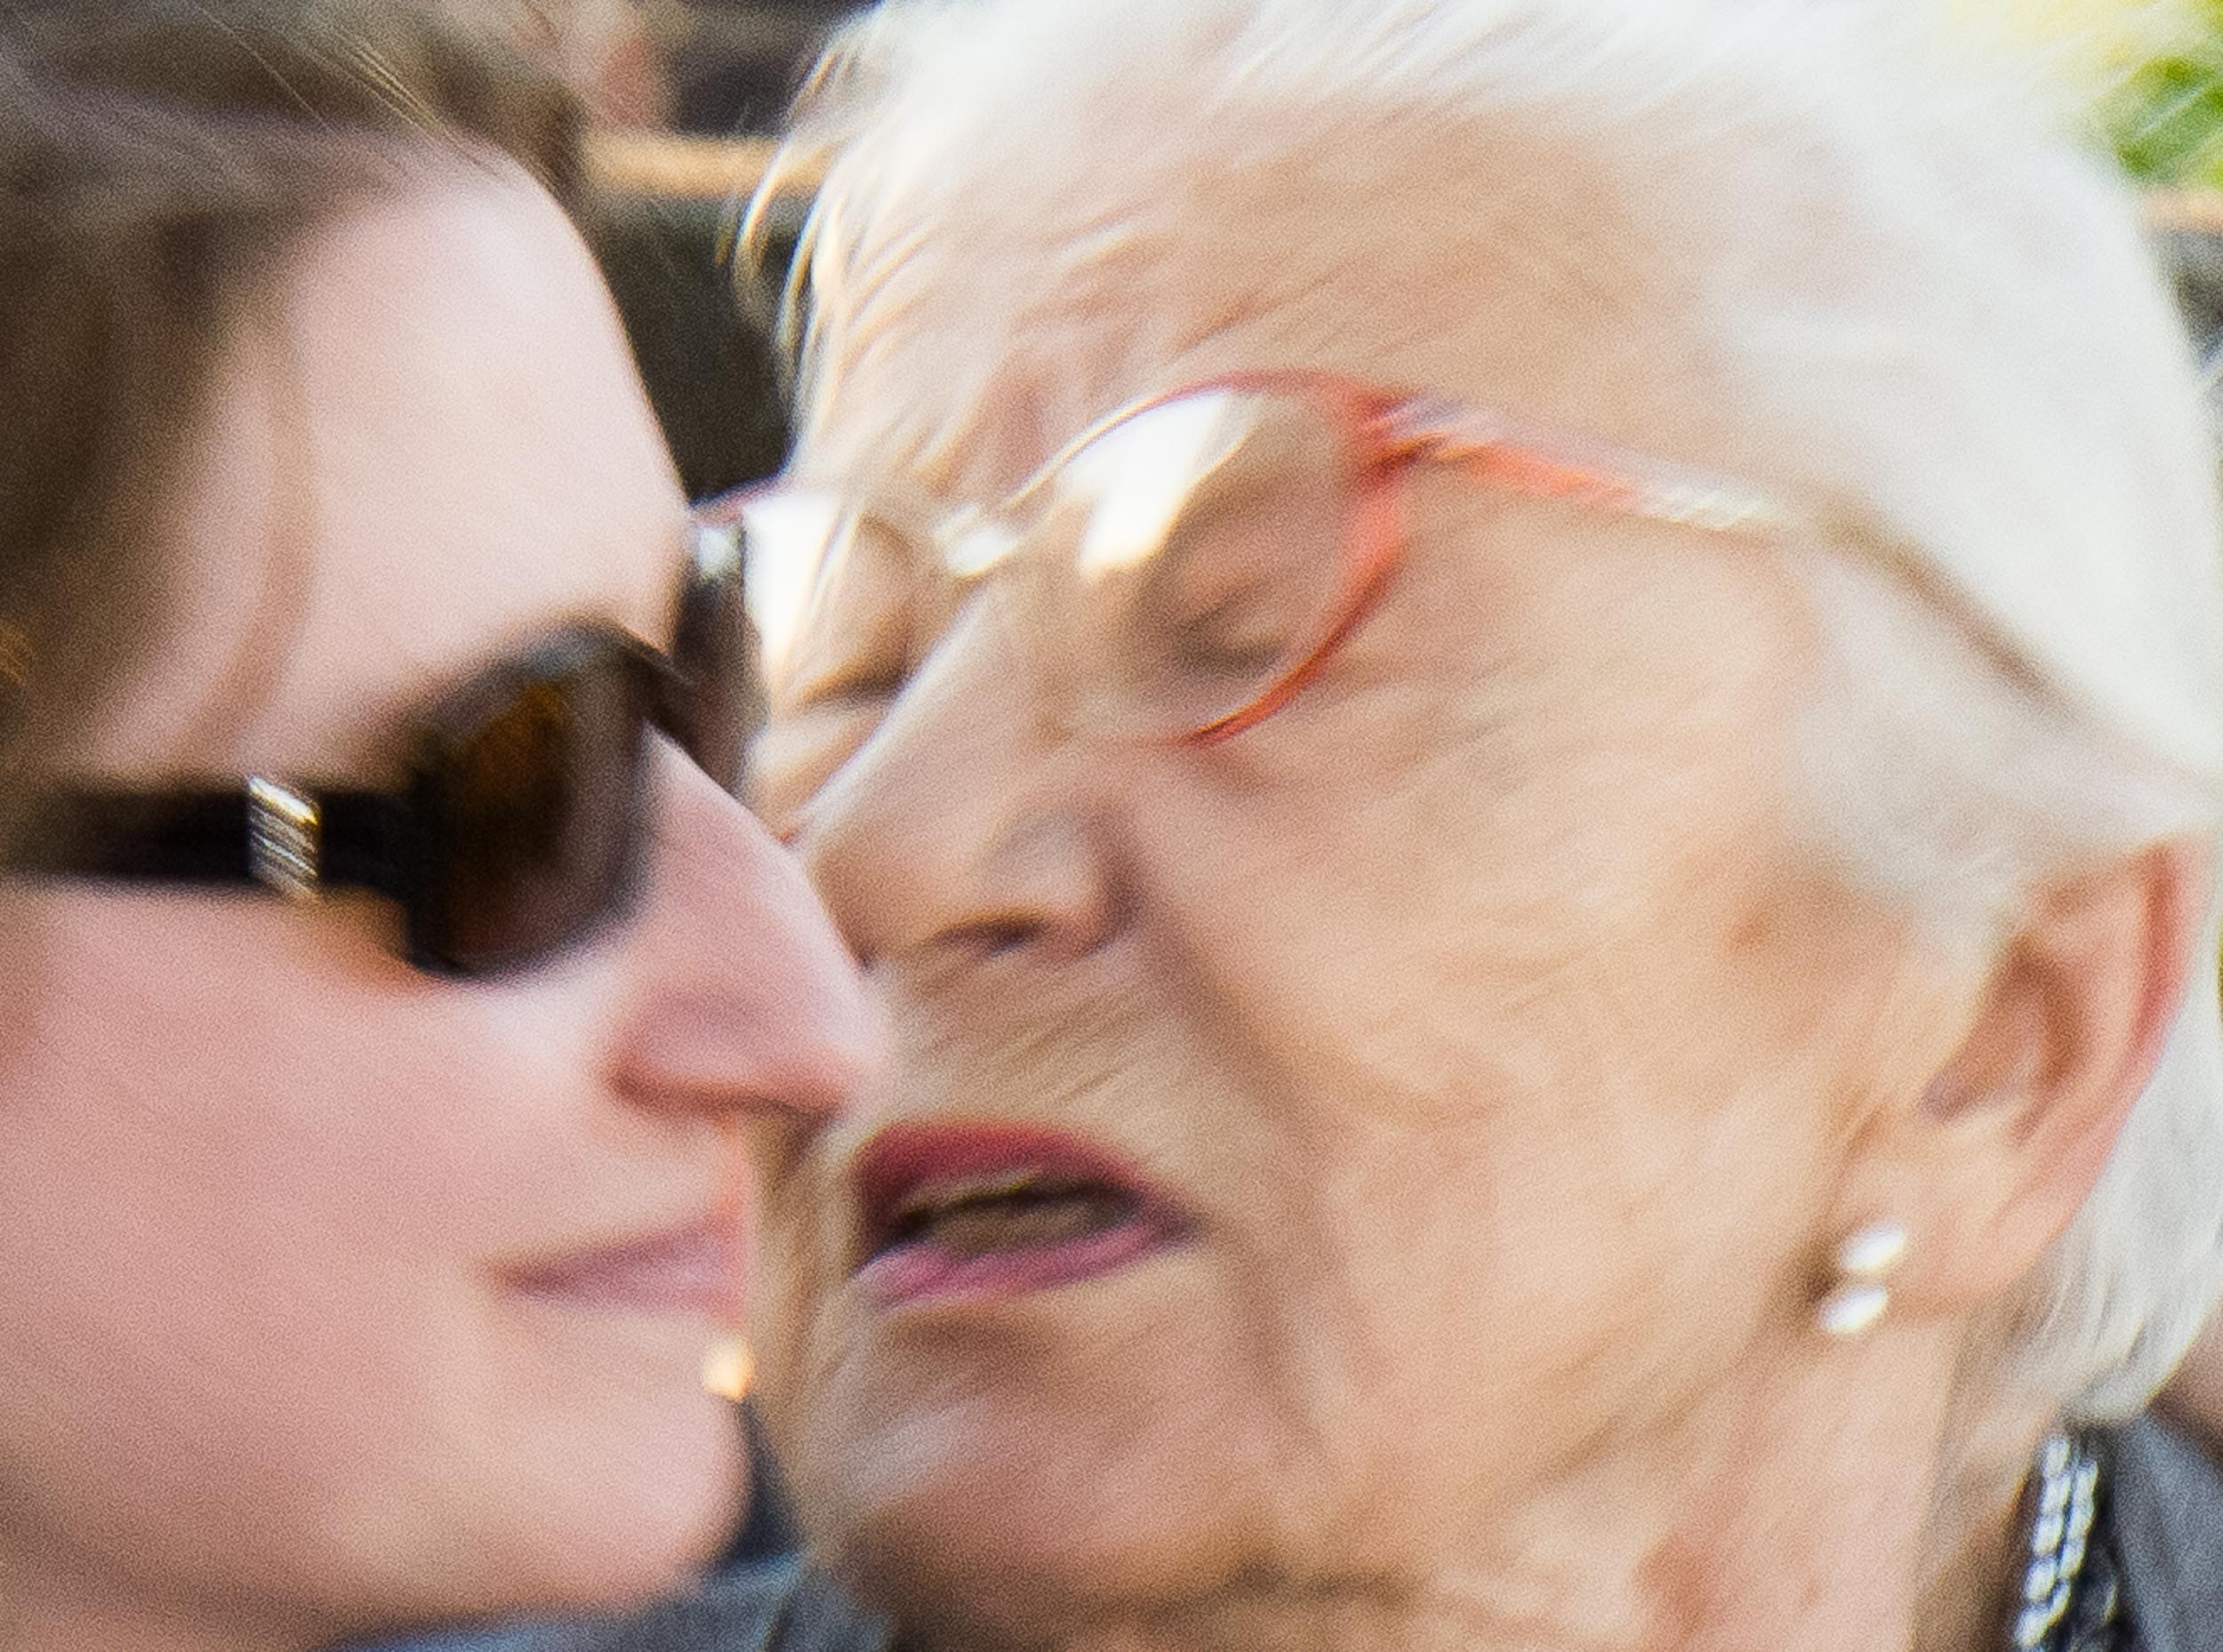 Barbara Alper- Photo of two women greeting, one younger and one elder, faces  together, emotional, in motion, closeup